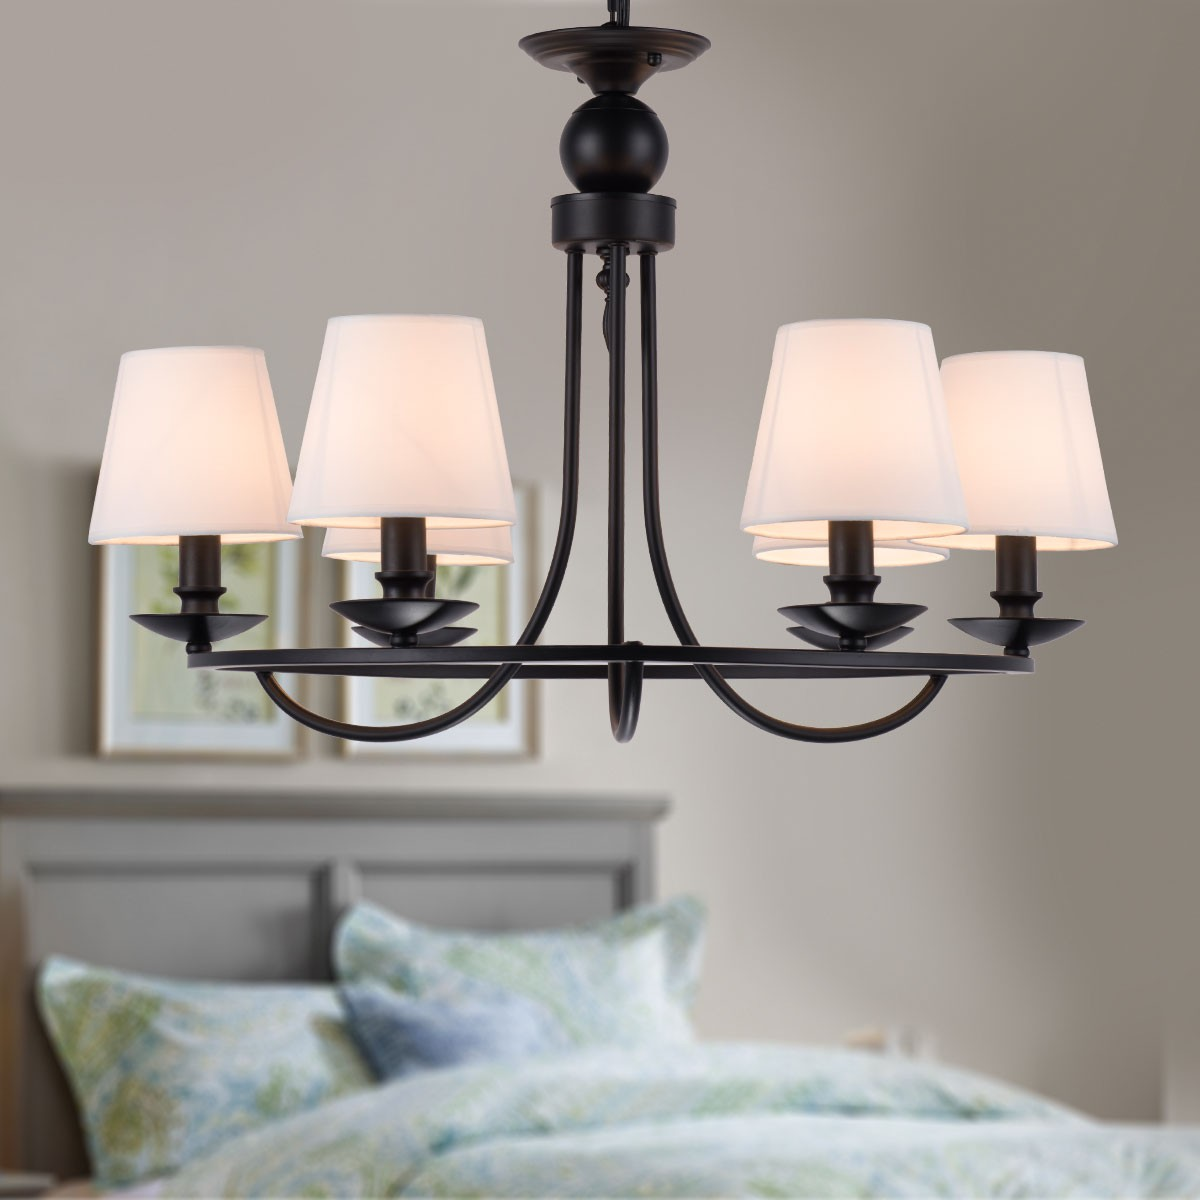 6 Light Black Wrought Iron Chandelier With Cloth Shades